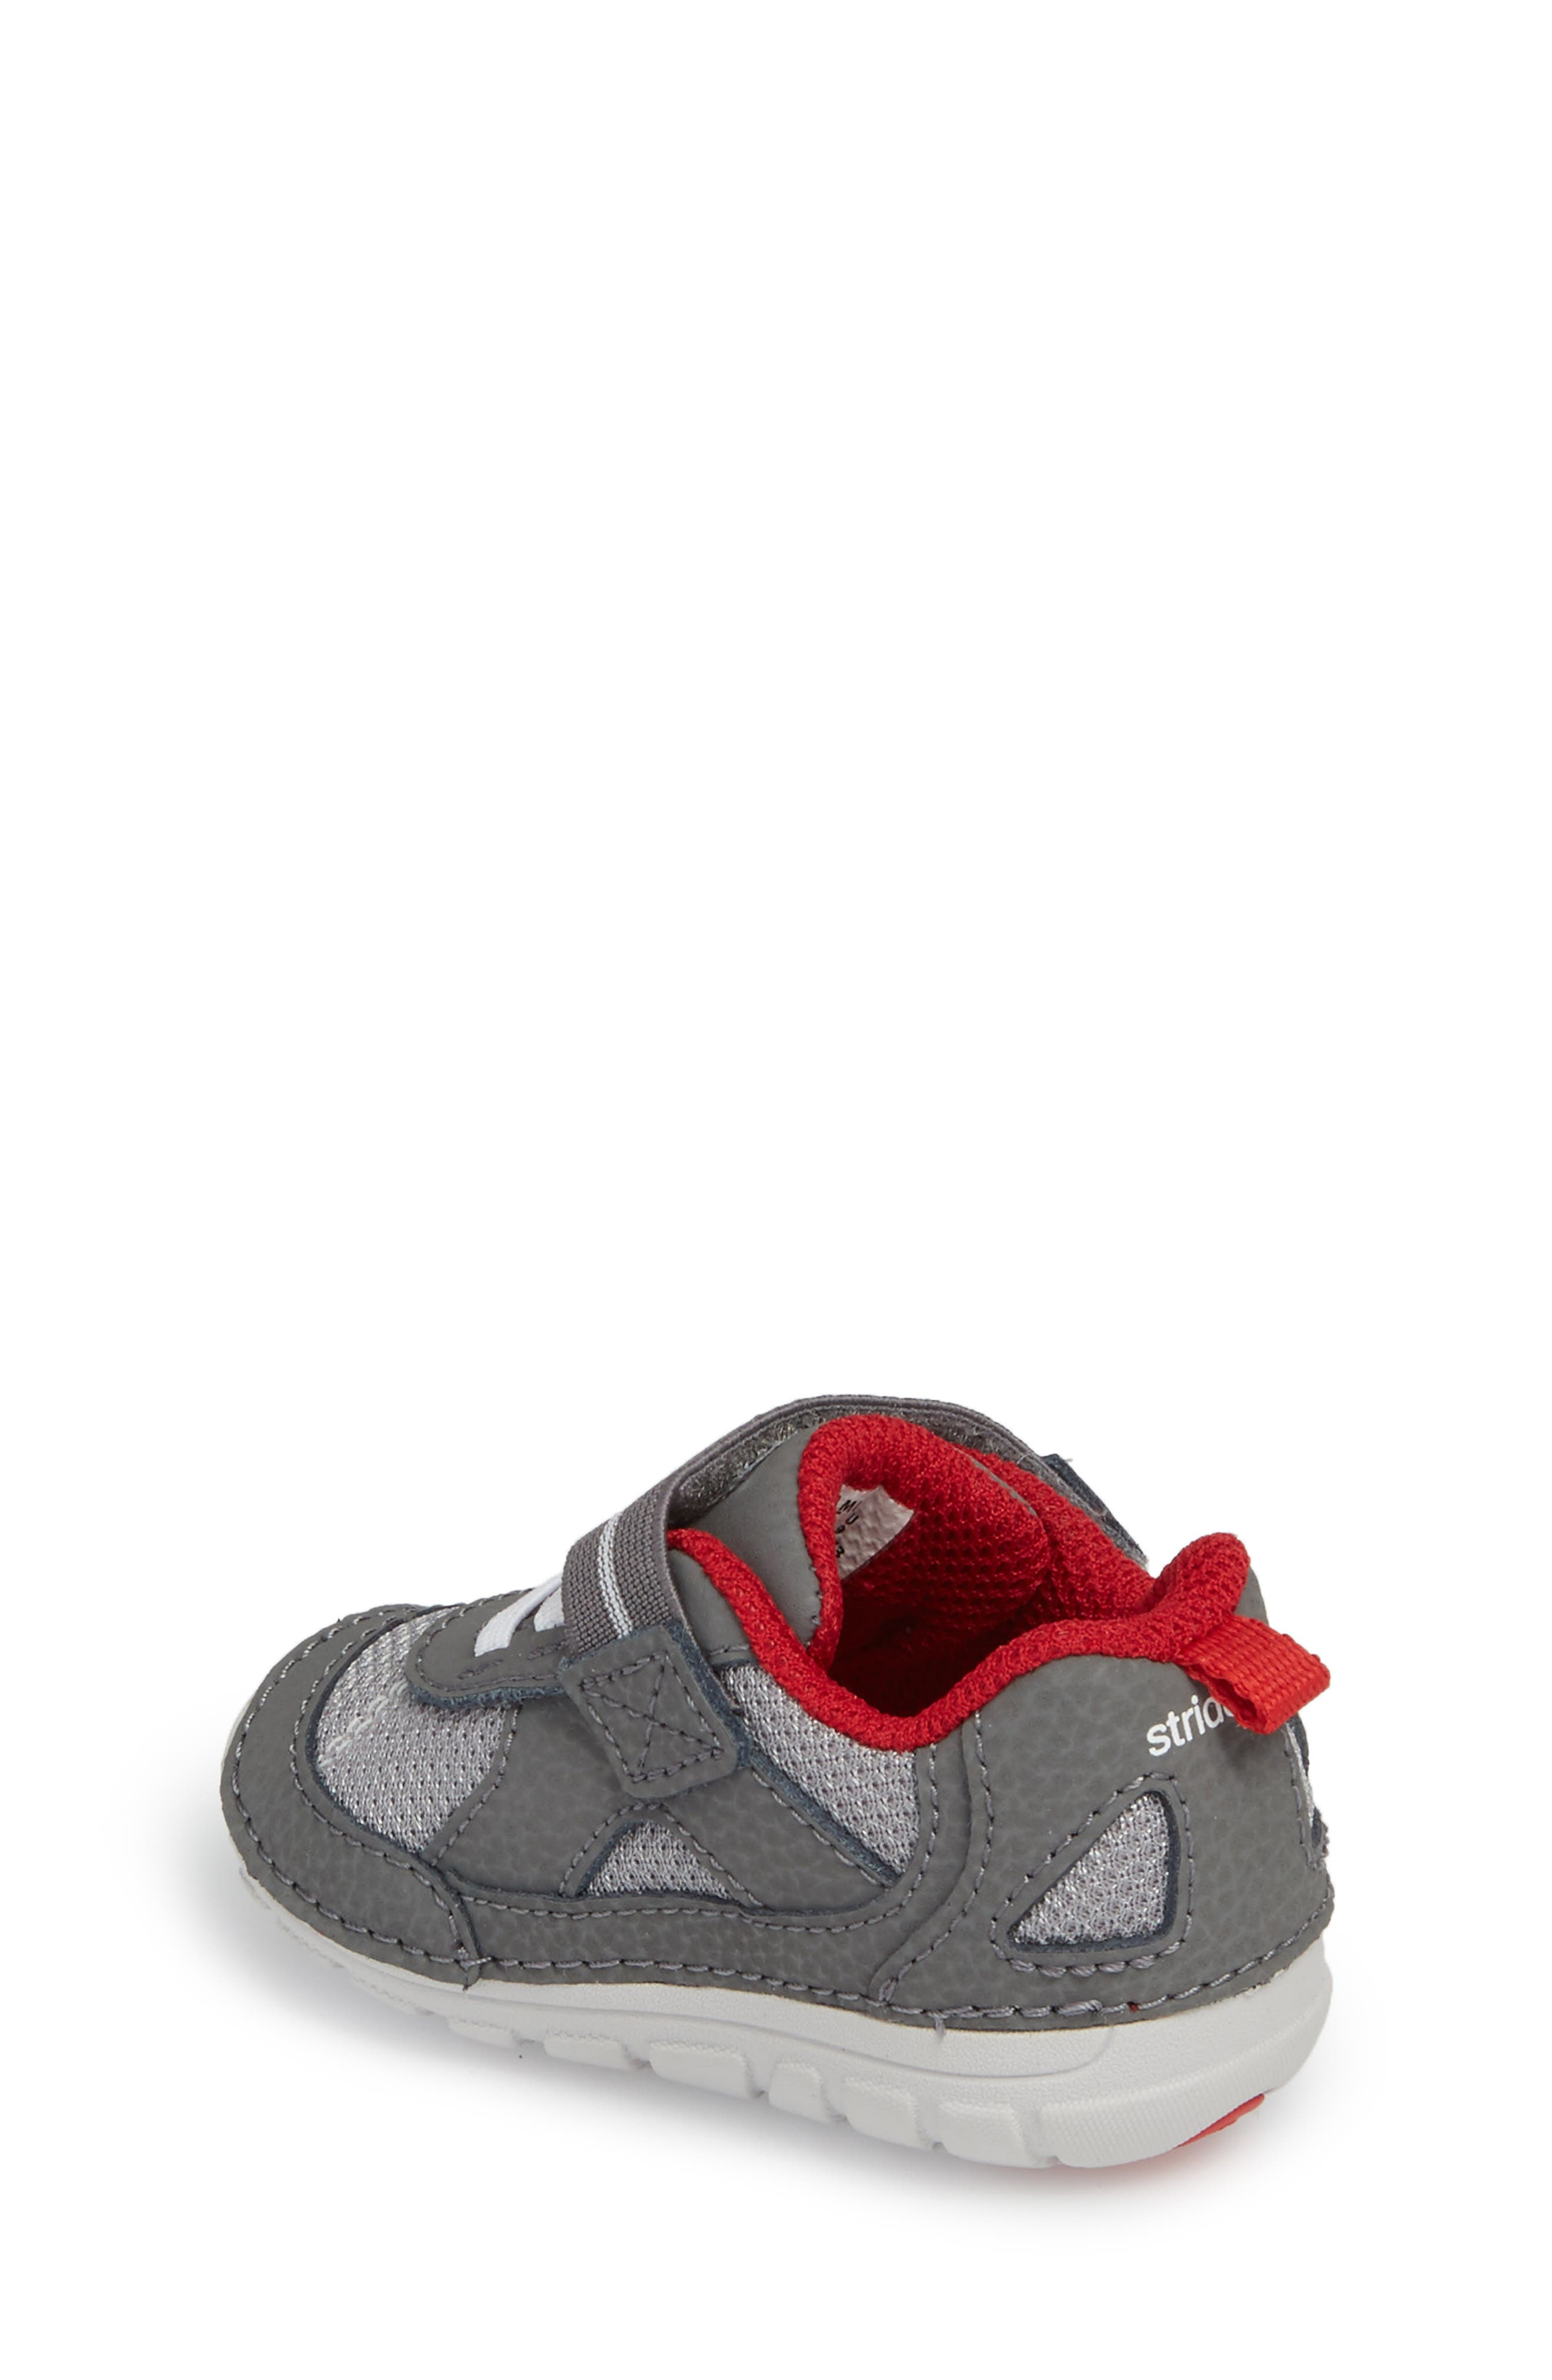 Alternate Image 2  - Stride Rite Soft Motion™ Jamie Sneaker (Baby & Walker)